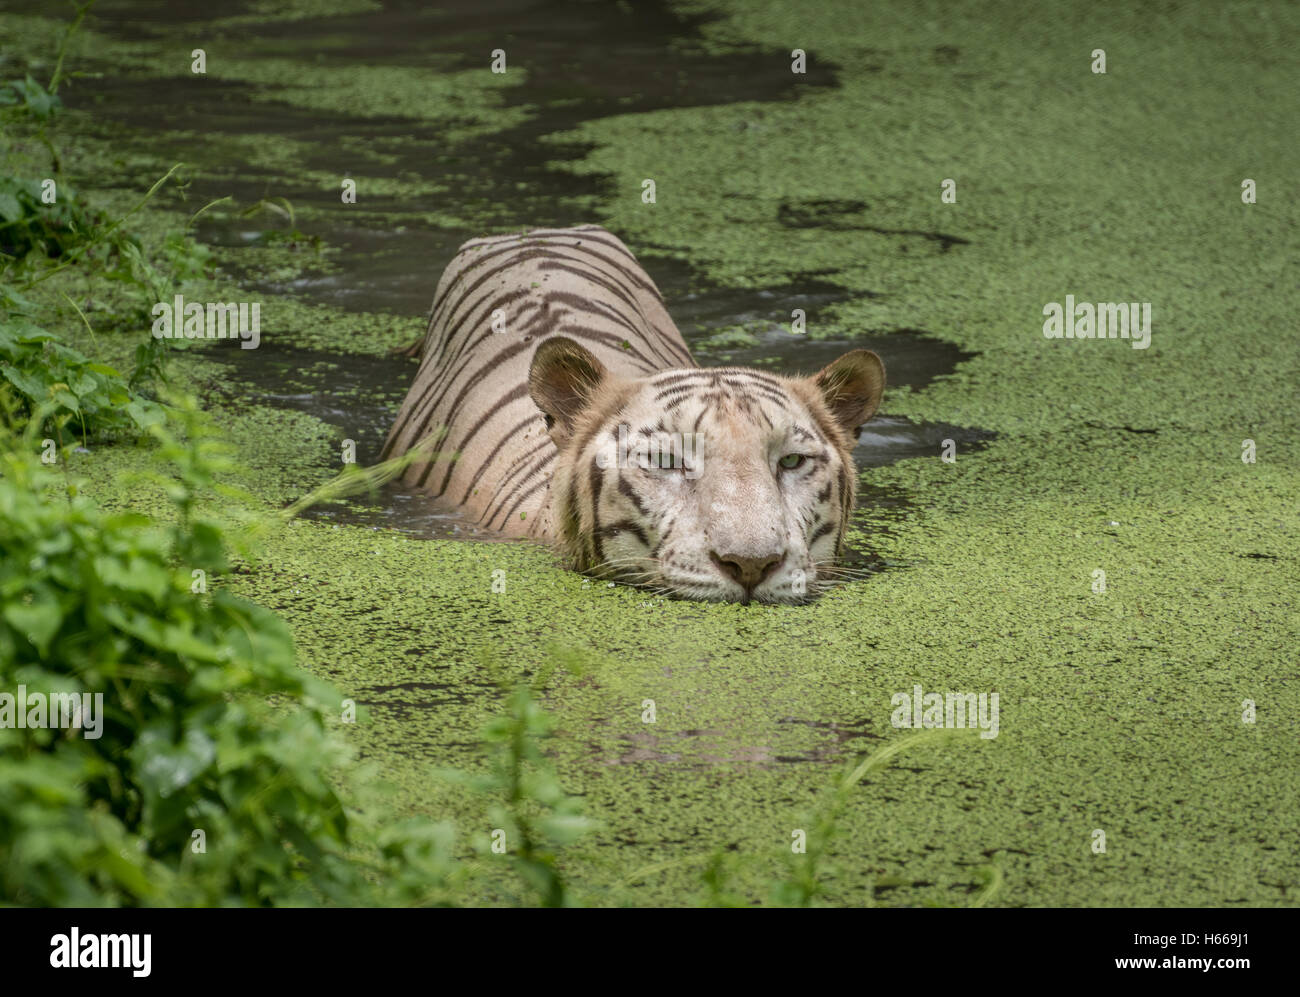 White tiger swims in the water of a marshy swamp. White Bengal tigers are considered as endangered species. Stock Photo